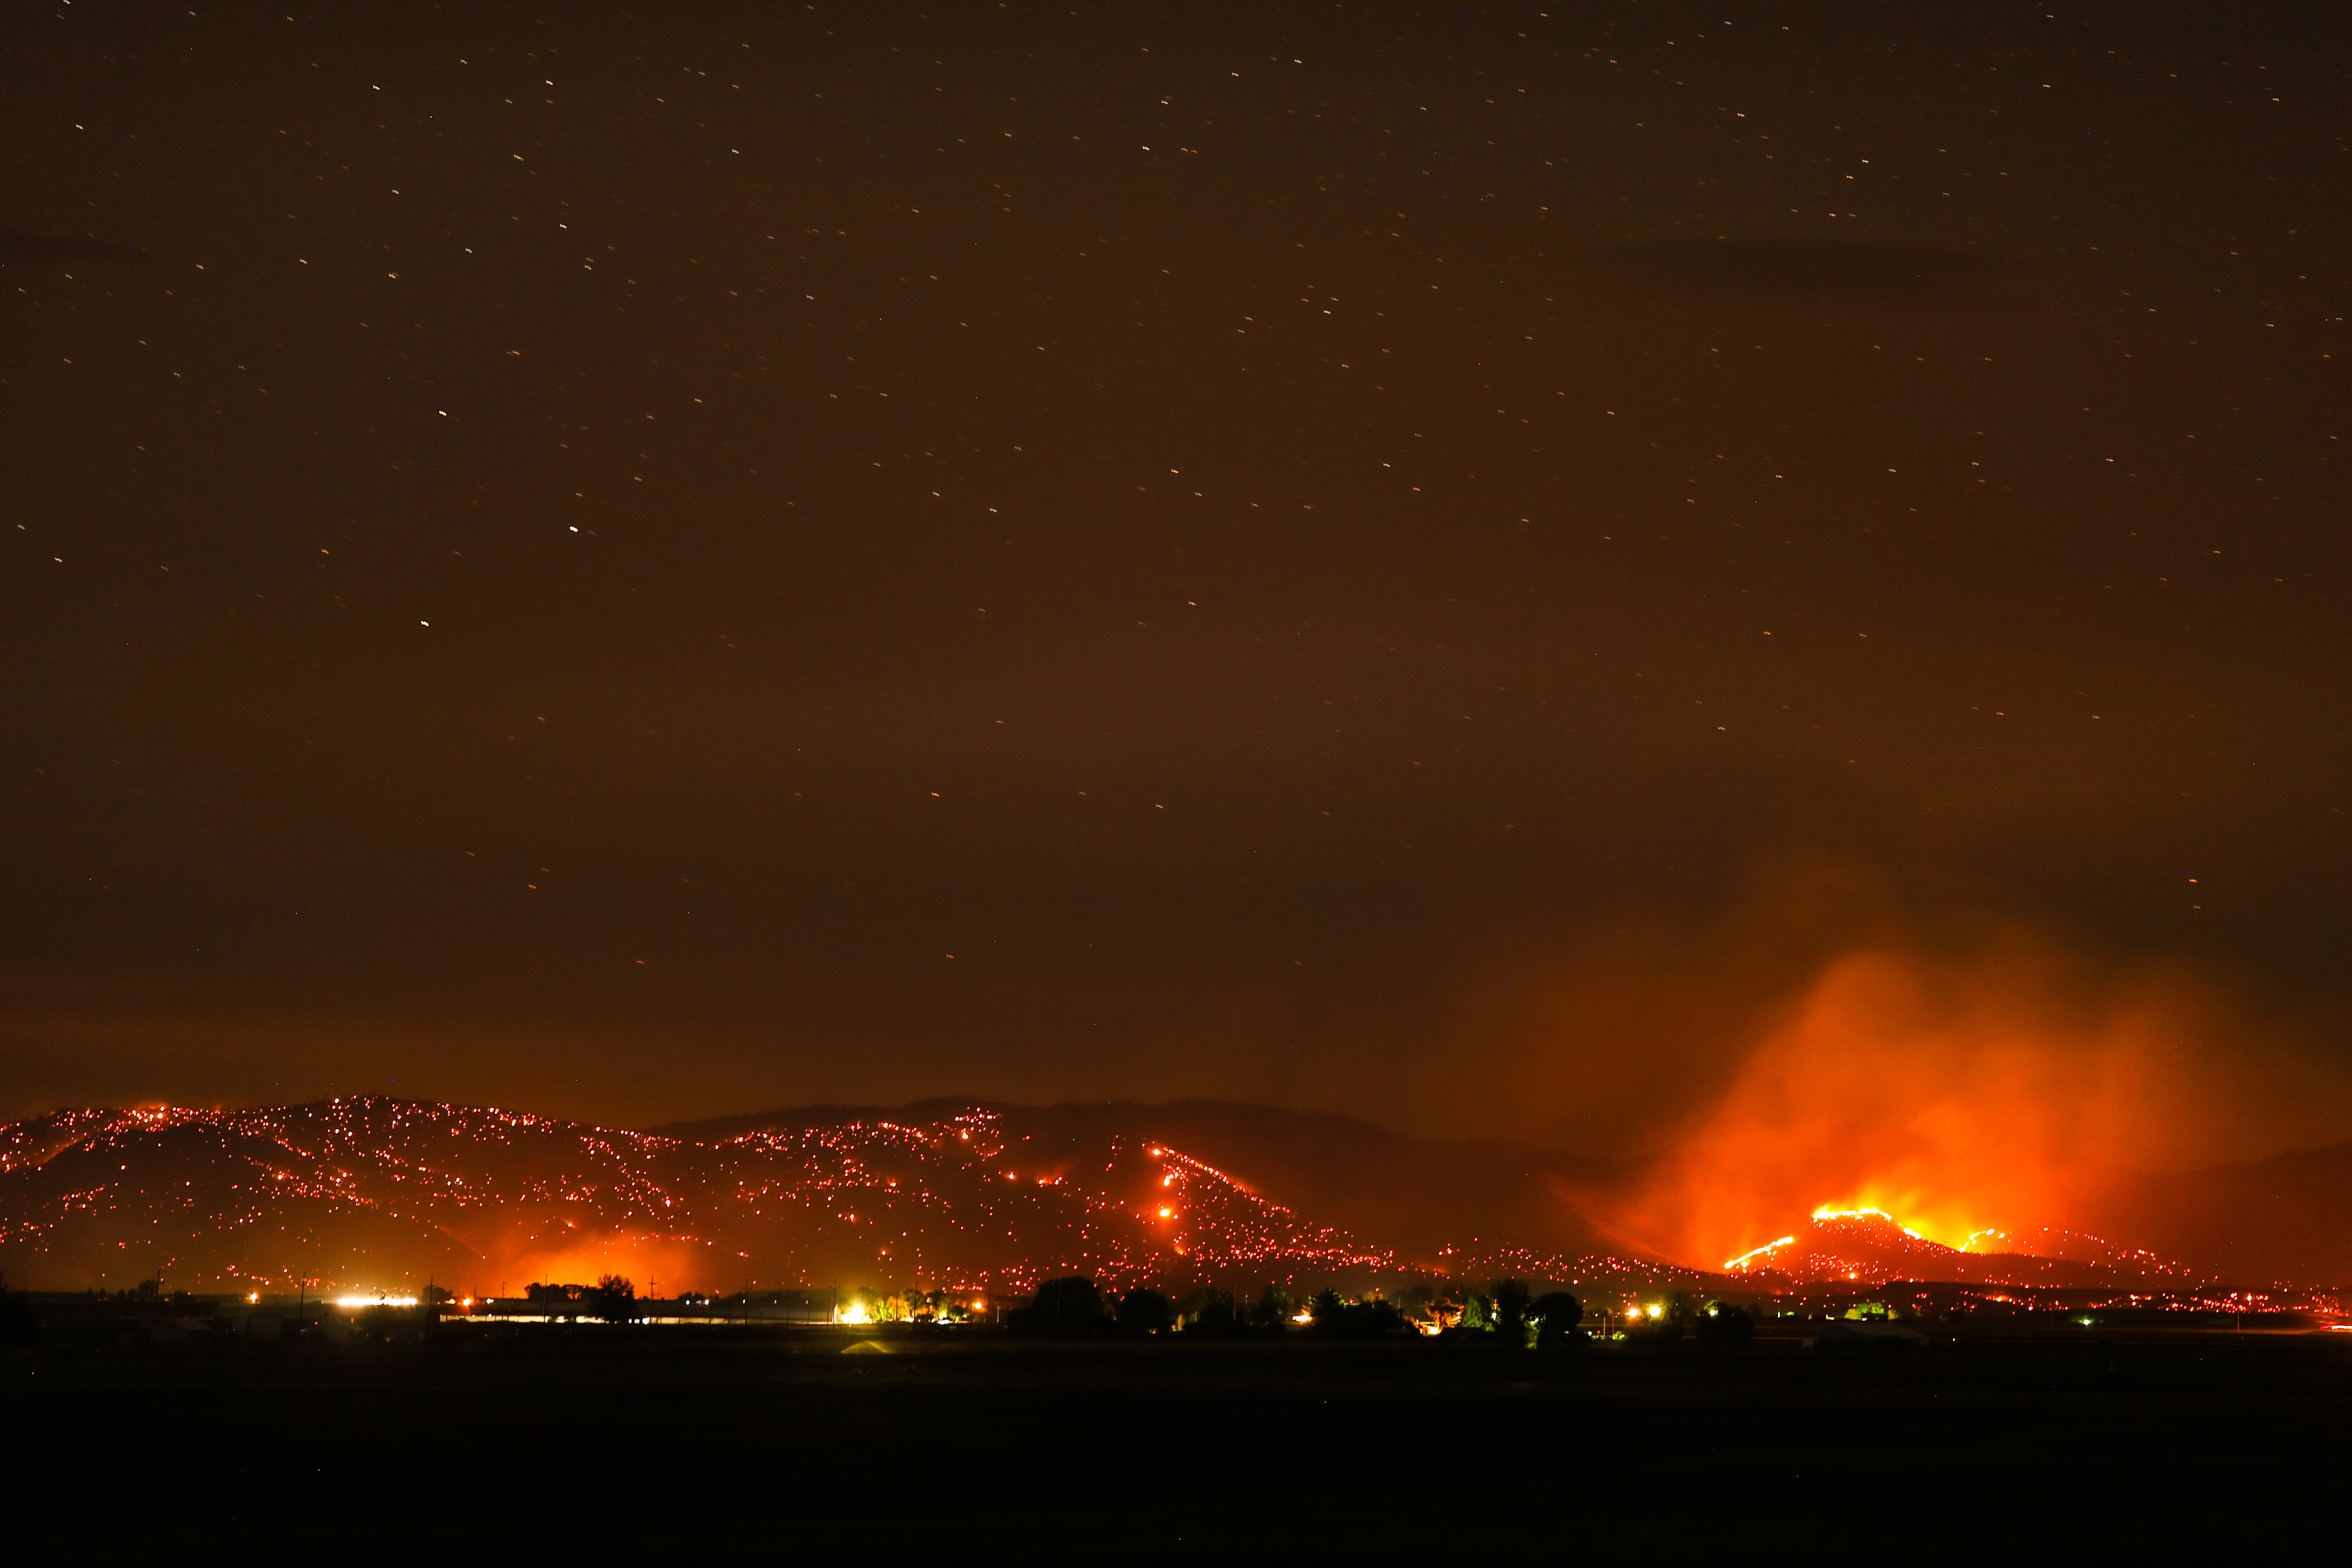 A wildfire burns in sagebrush and grass on a sidehill in Warm Springs, Oregon on August 18, 2017. The fire is burning over 60,000 acres and is displacing visitors hoping to have clear skies for the total solar eclipse Monday. Total solar eclipse enthusiasts gather in Madras, Oregon on August 18, 2017.